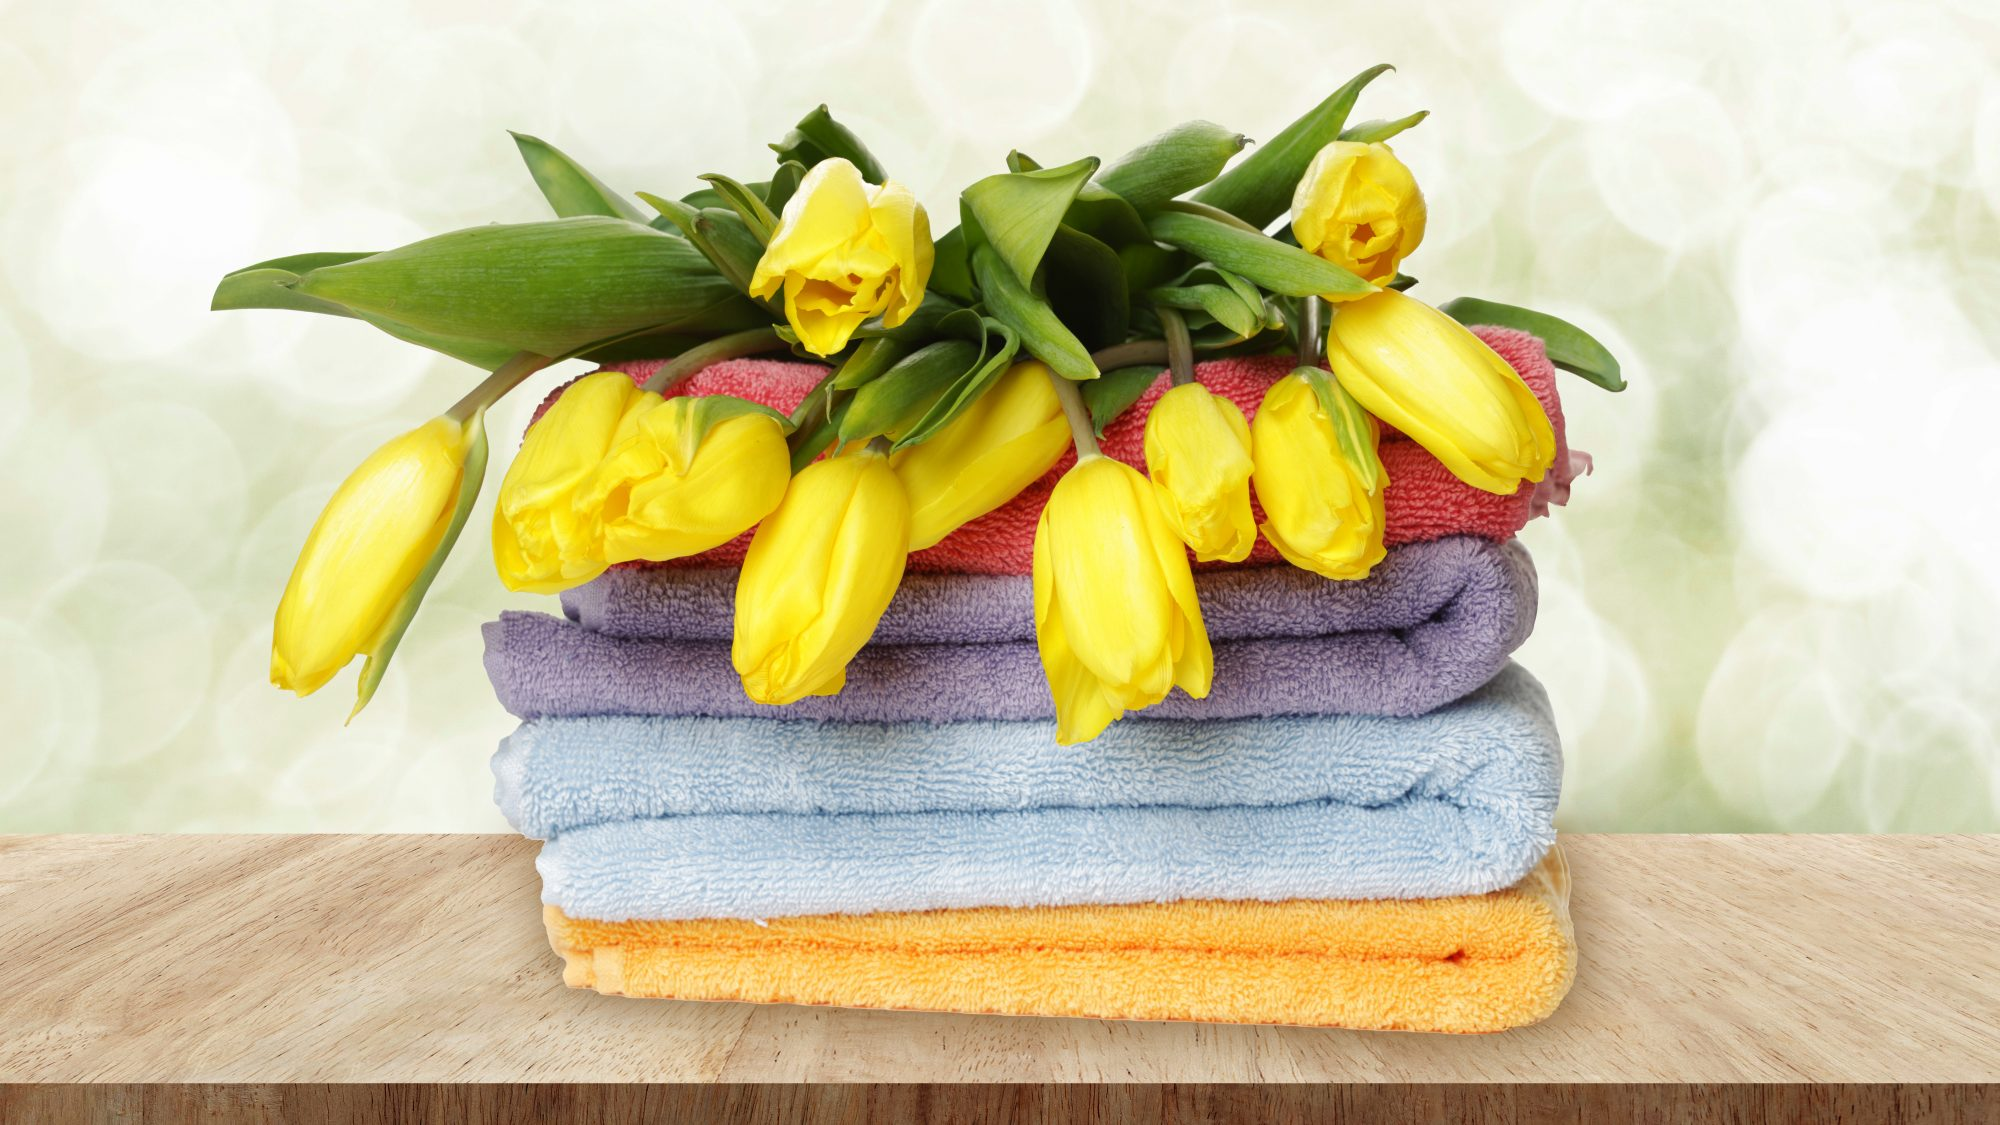 The Best Things to Spring Clean Early, tulips on clean towels